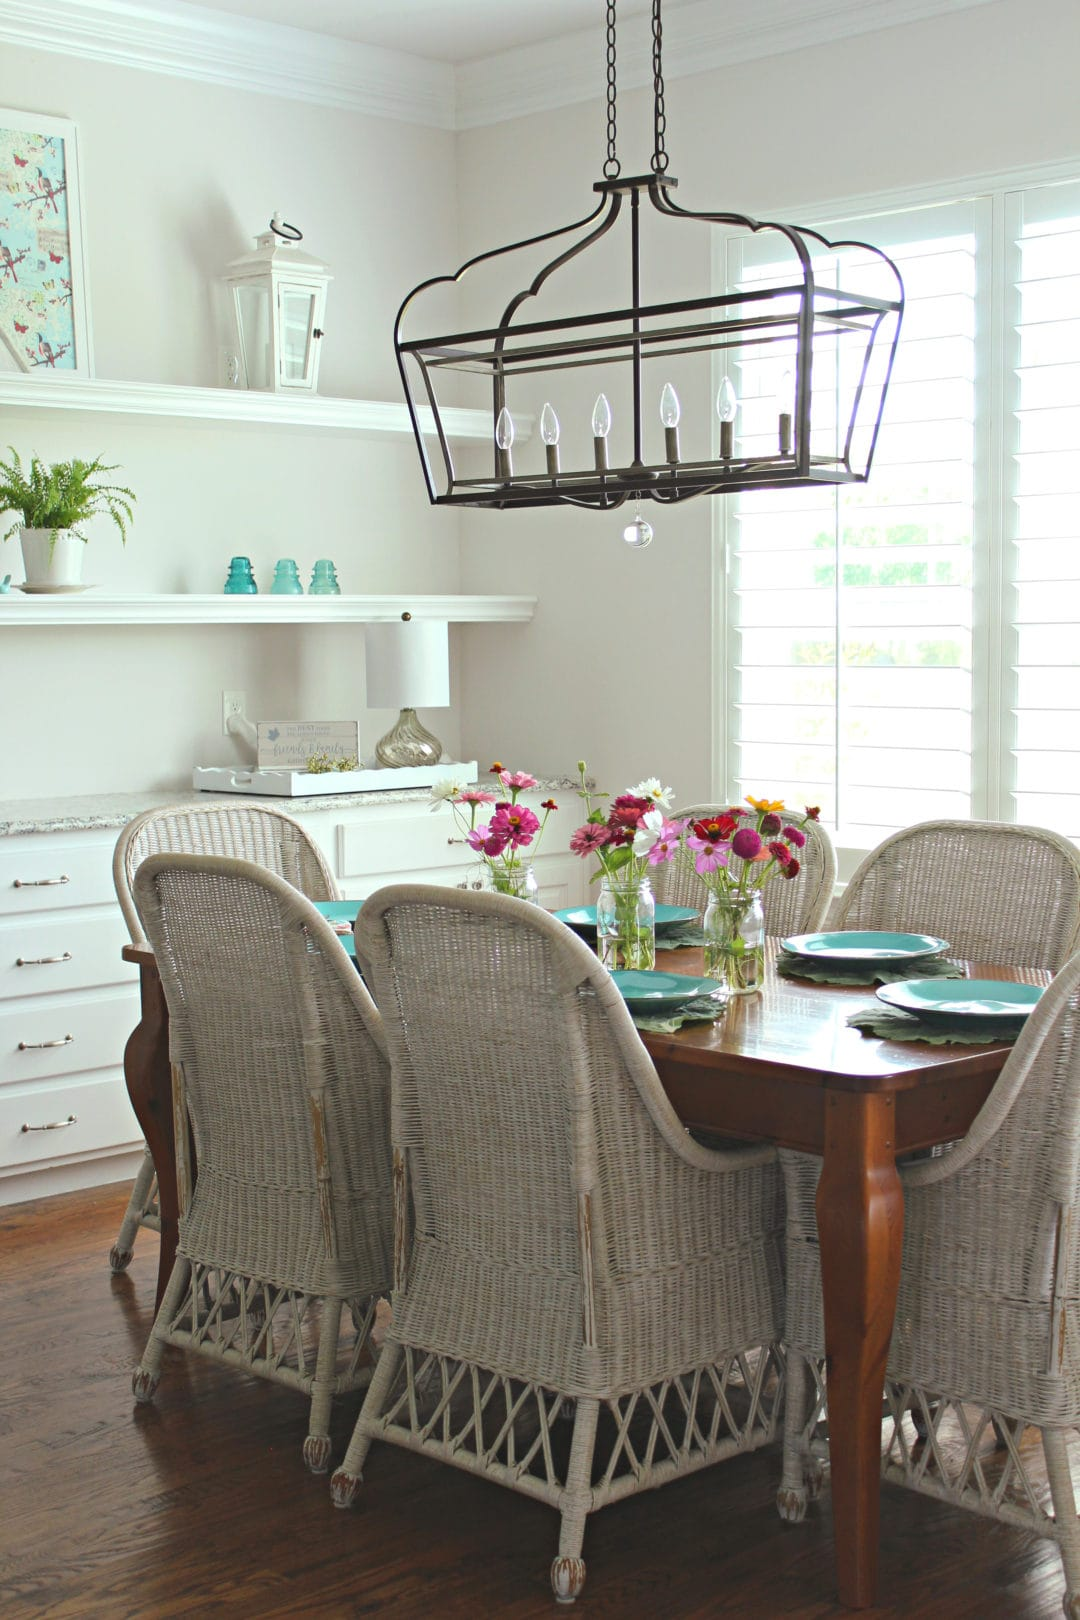 Poofing the Pillows summer home tour - breakfast area with wicker chairs and touches of farmhouse decor and shelving